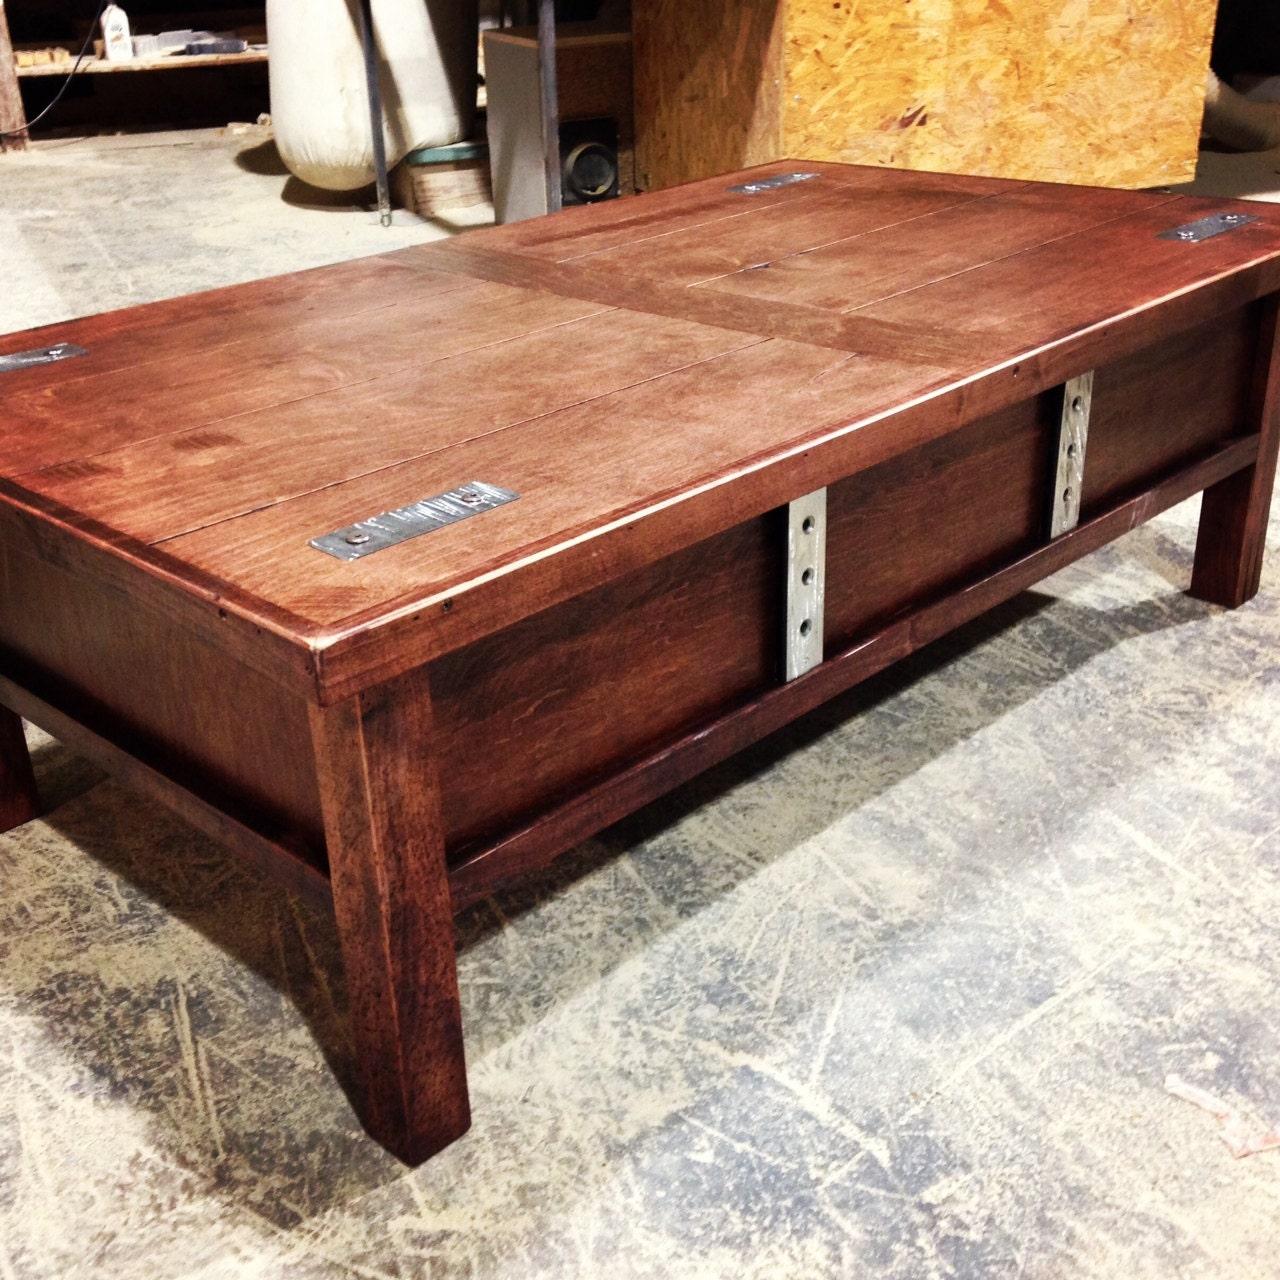 Coffee Table With Hidden Gun Storage